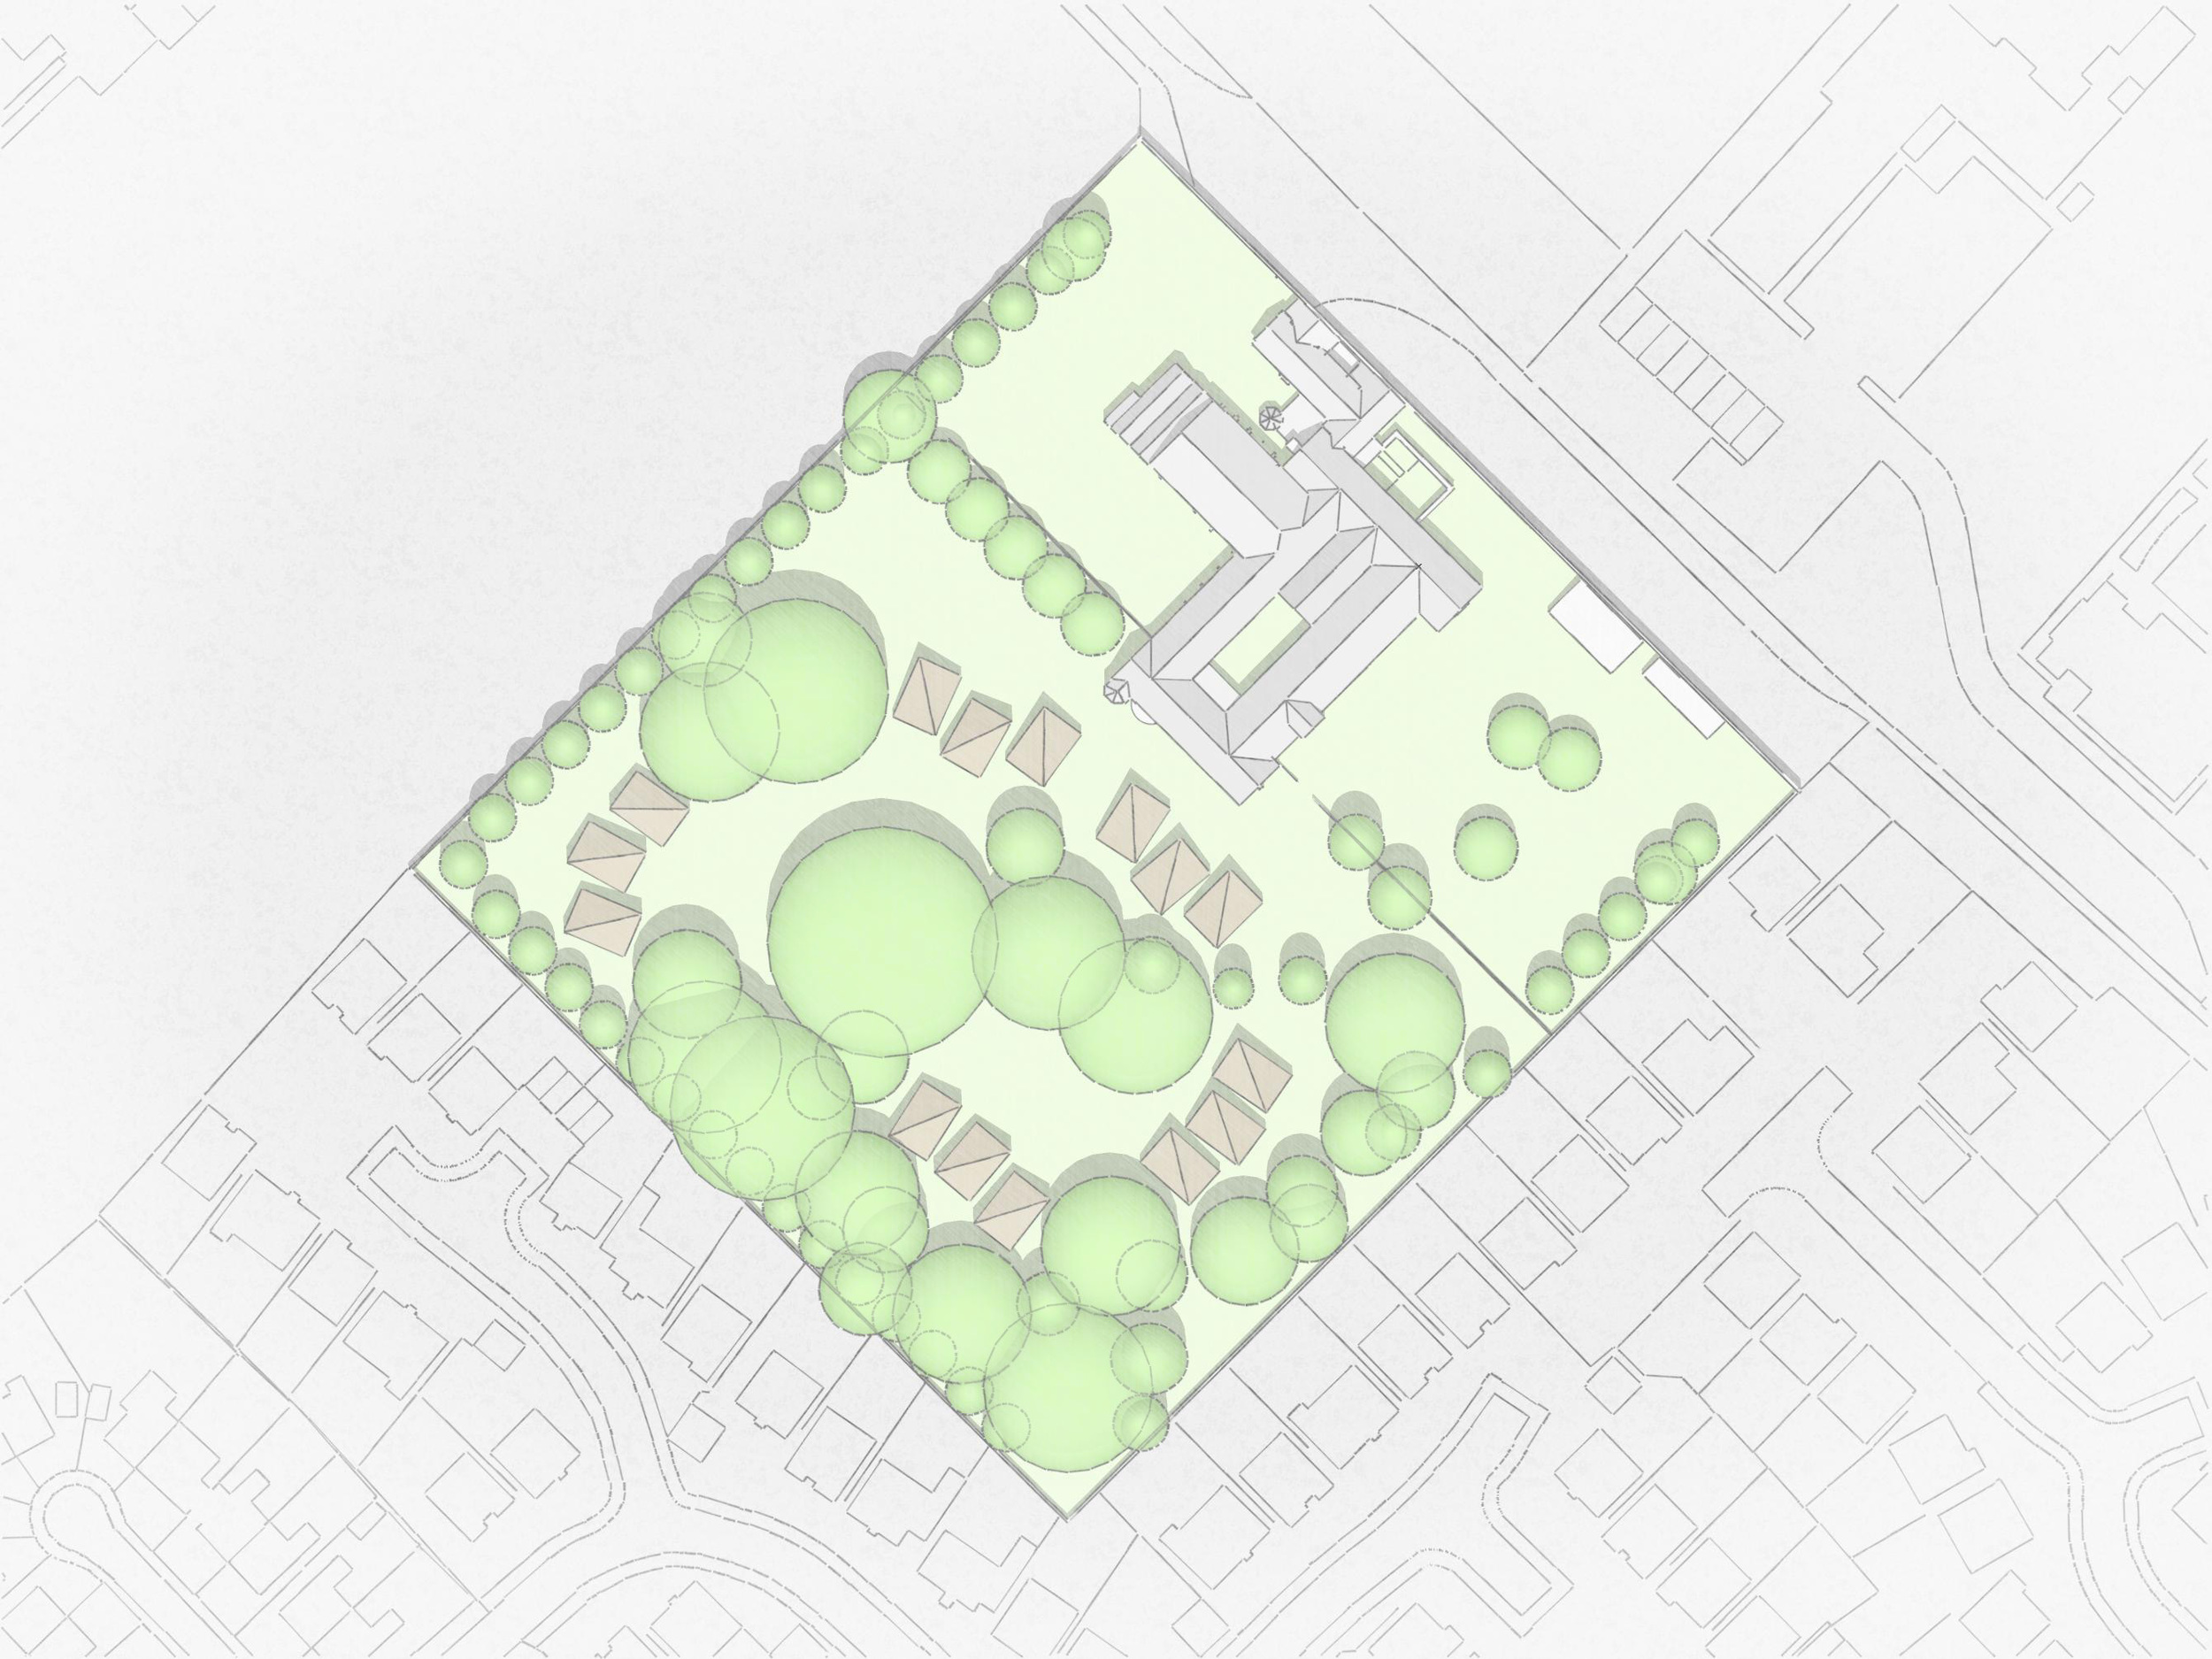 150 - Proposed Site Plan.jpg